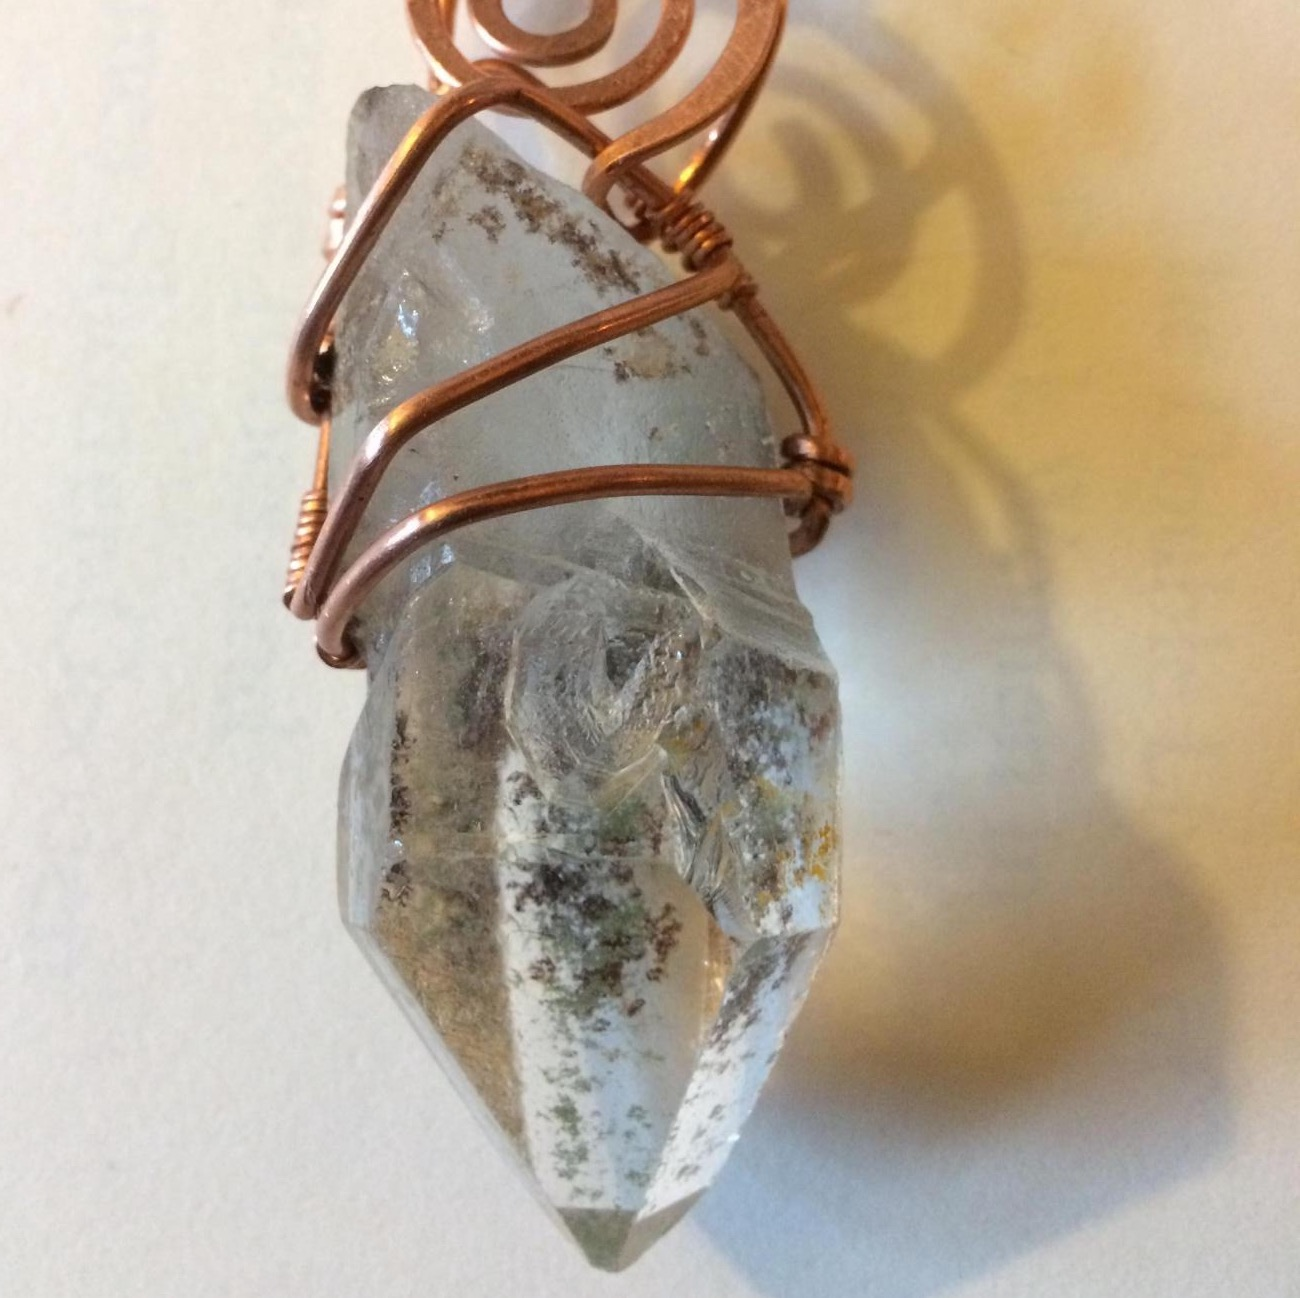 Sessions & Classes - Rework Creative Jewelry by Toni Johnson